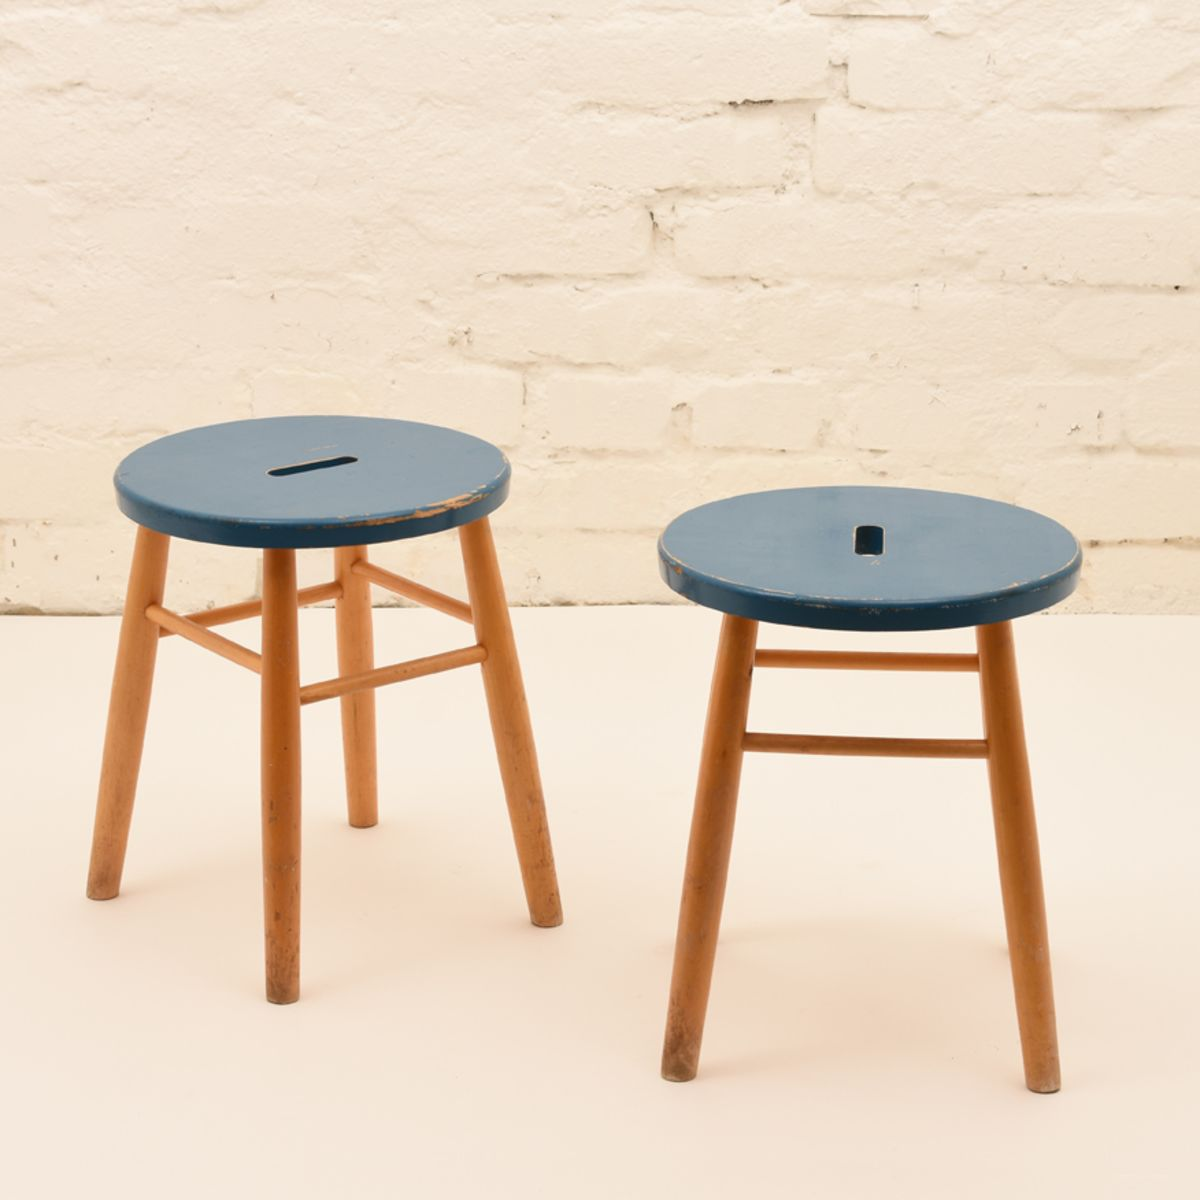 Utility-Stools-By-Enso-Gutzeit